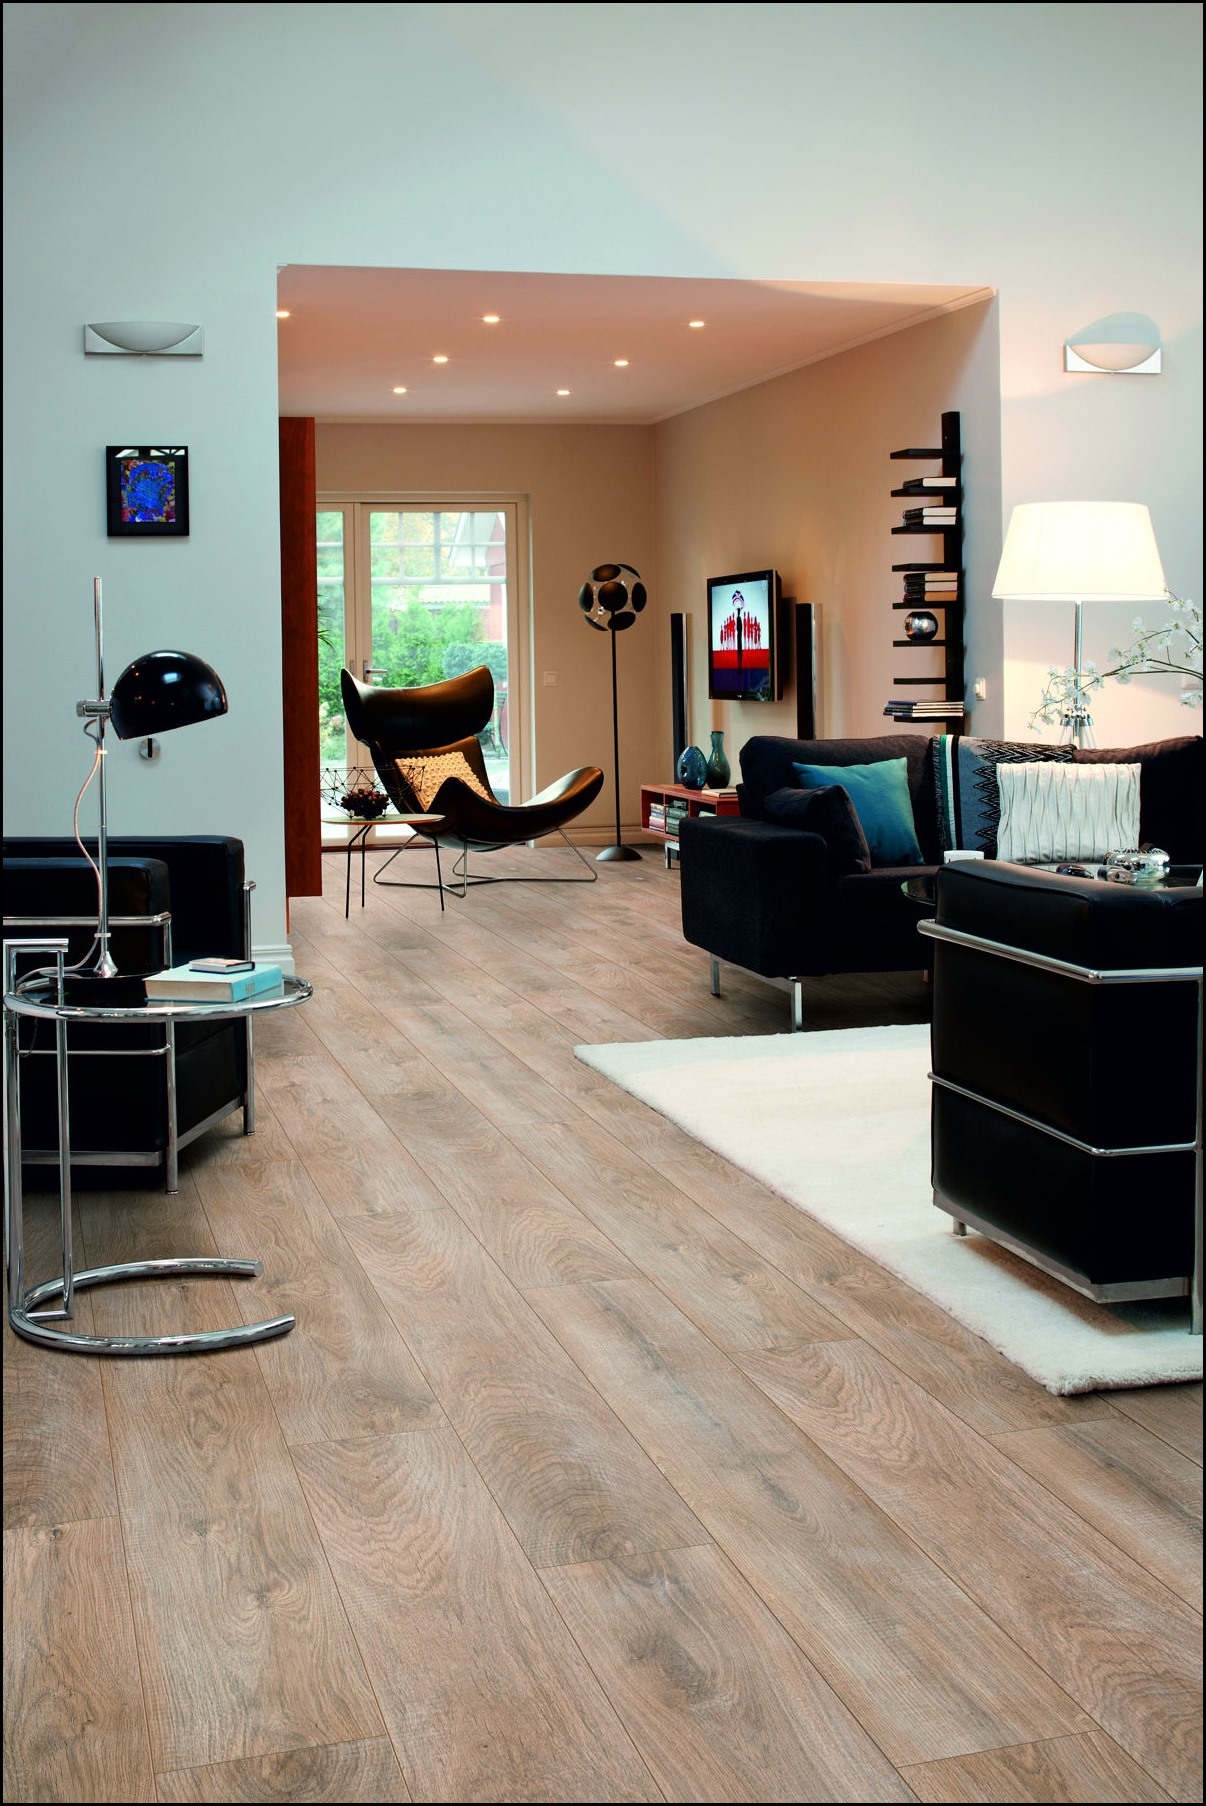 Every Time The Standard Of Labor Has Been Exceptional And Is Fine Quality Worth Pergo Laminate Floors Are Designed To Resist Years